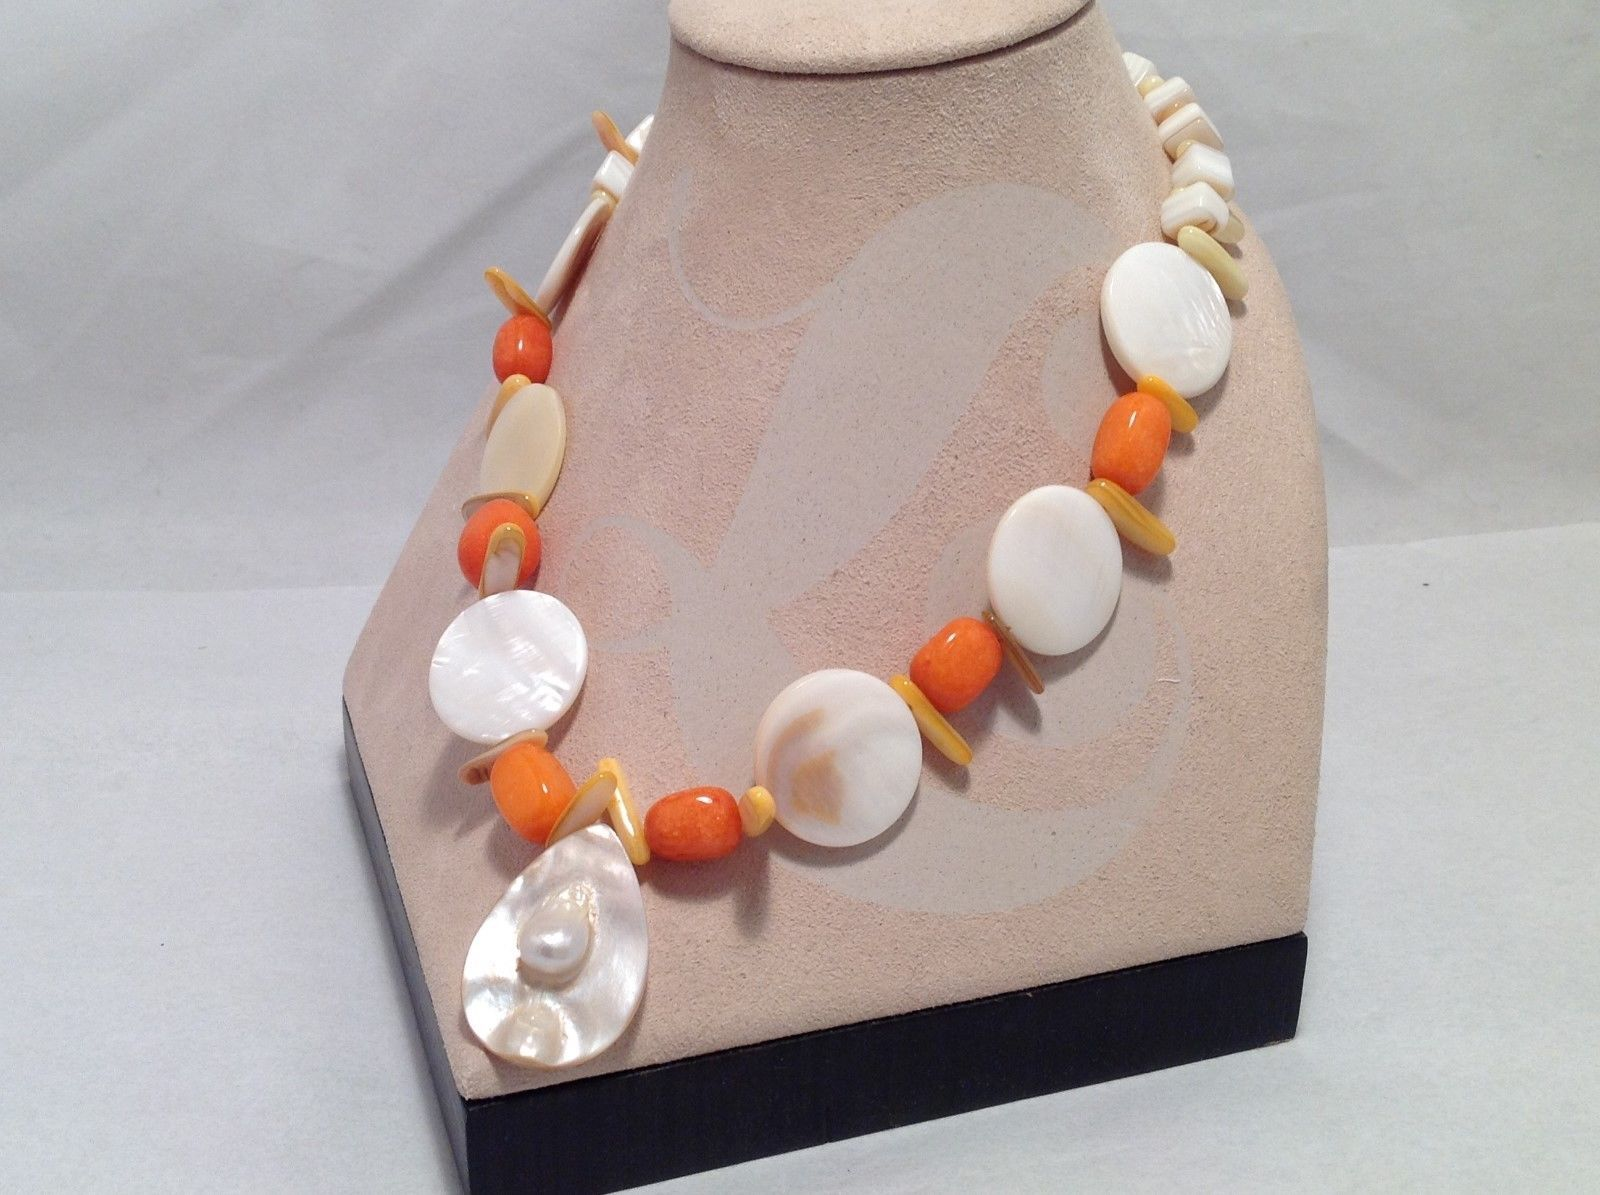 NEW One of A Kind Shell/Bead Necklace in White/Orange